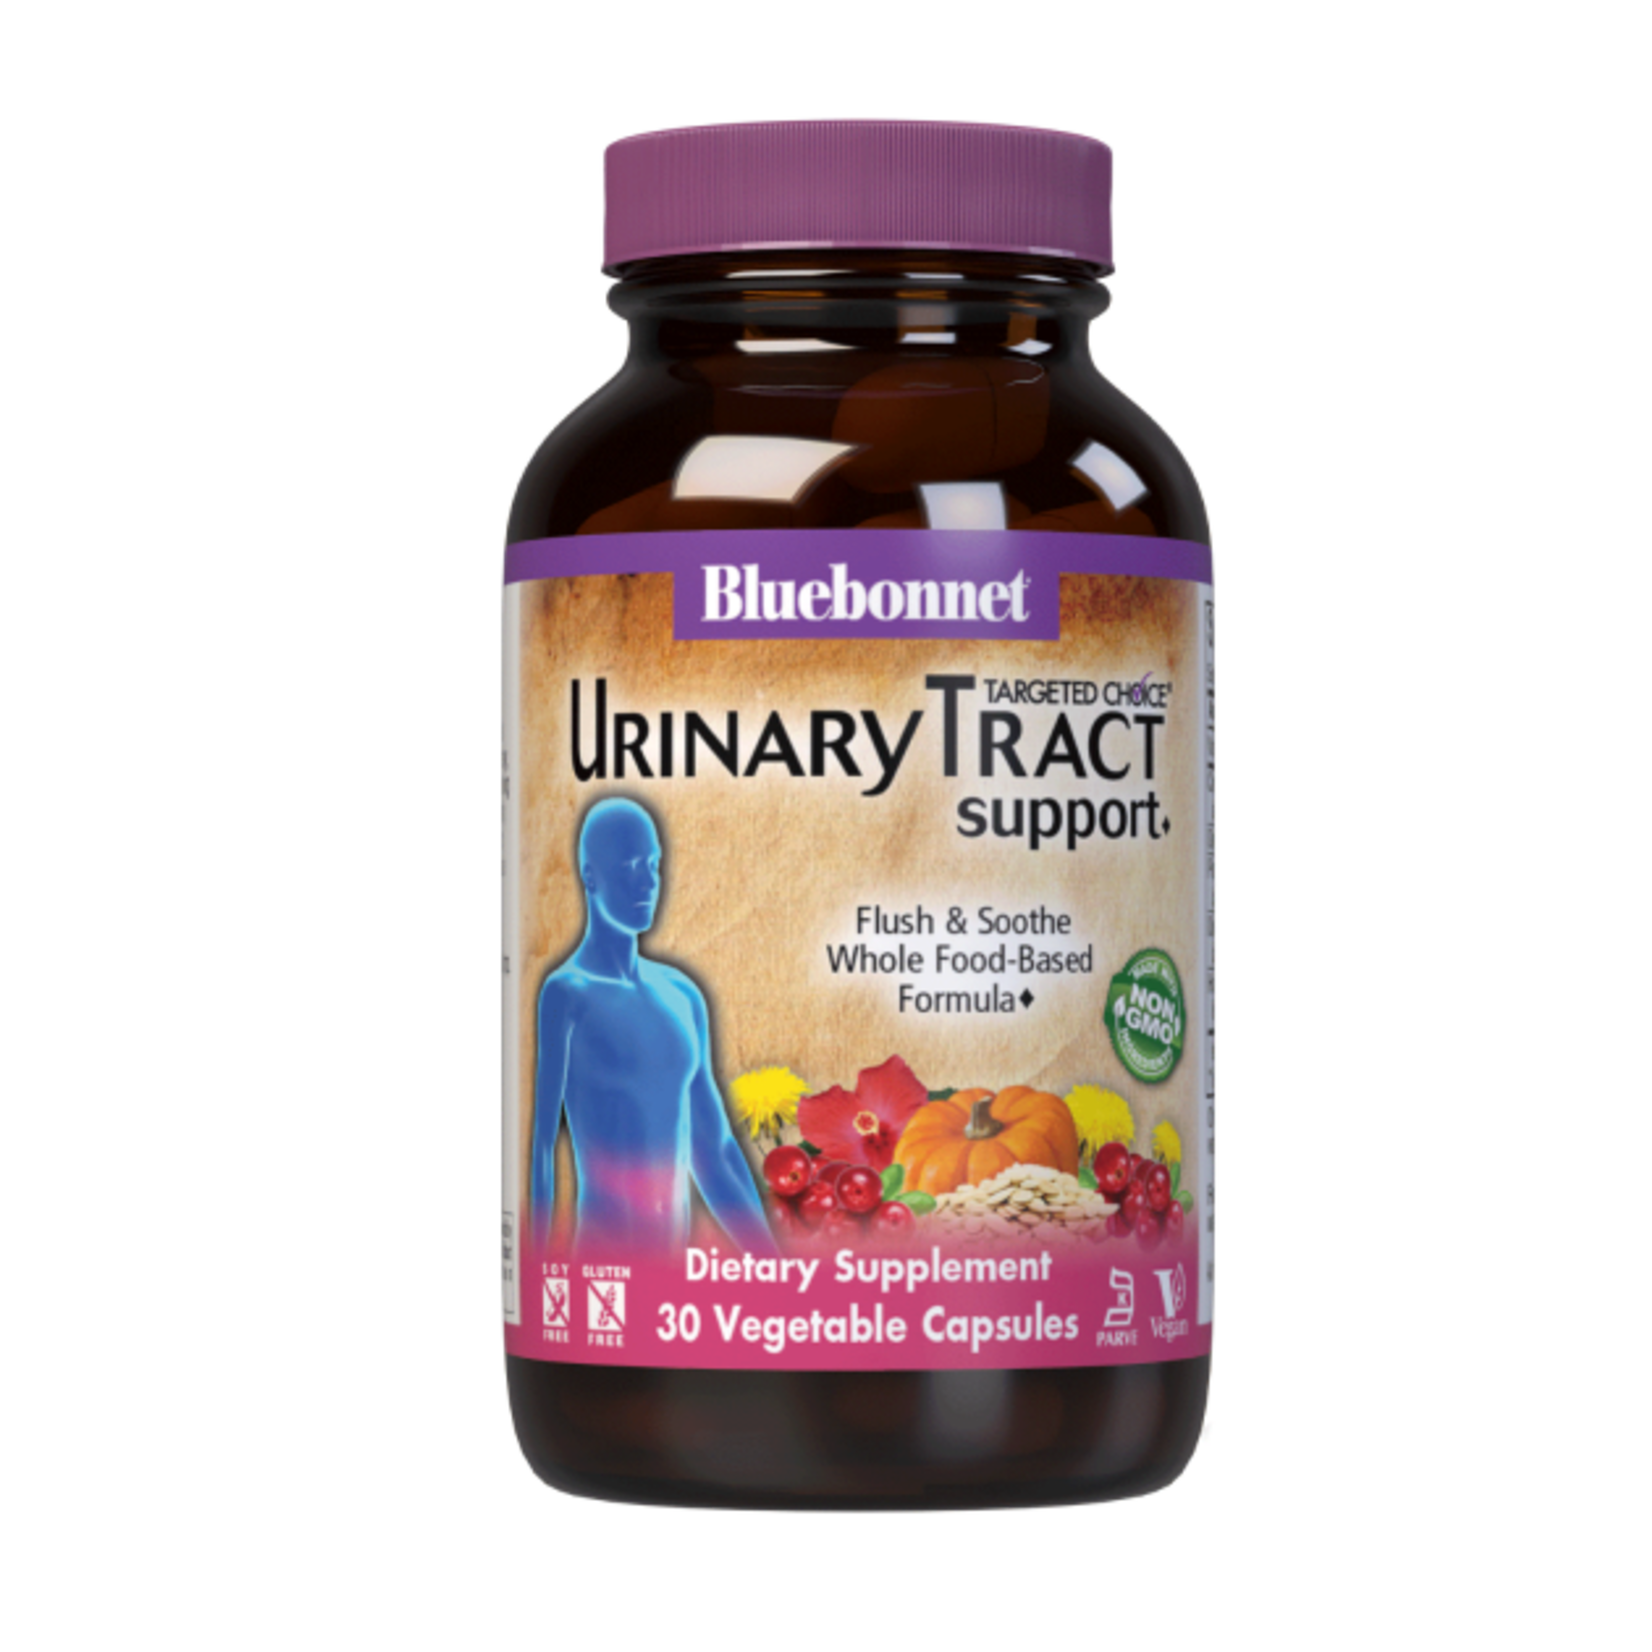 BlueBonnet Urinary Tract Support 30 Veg Capsules